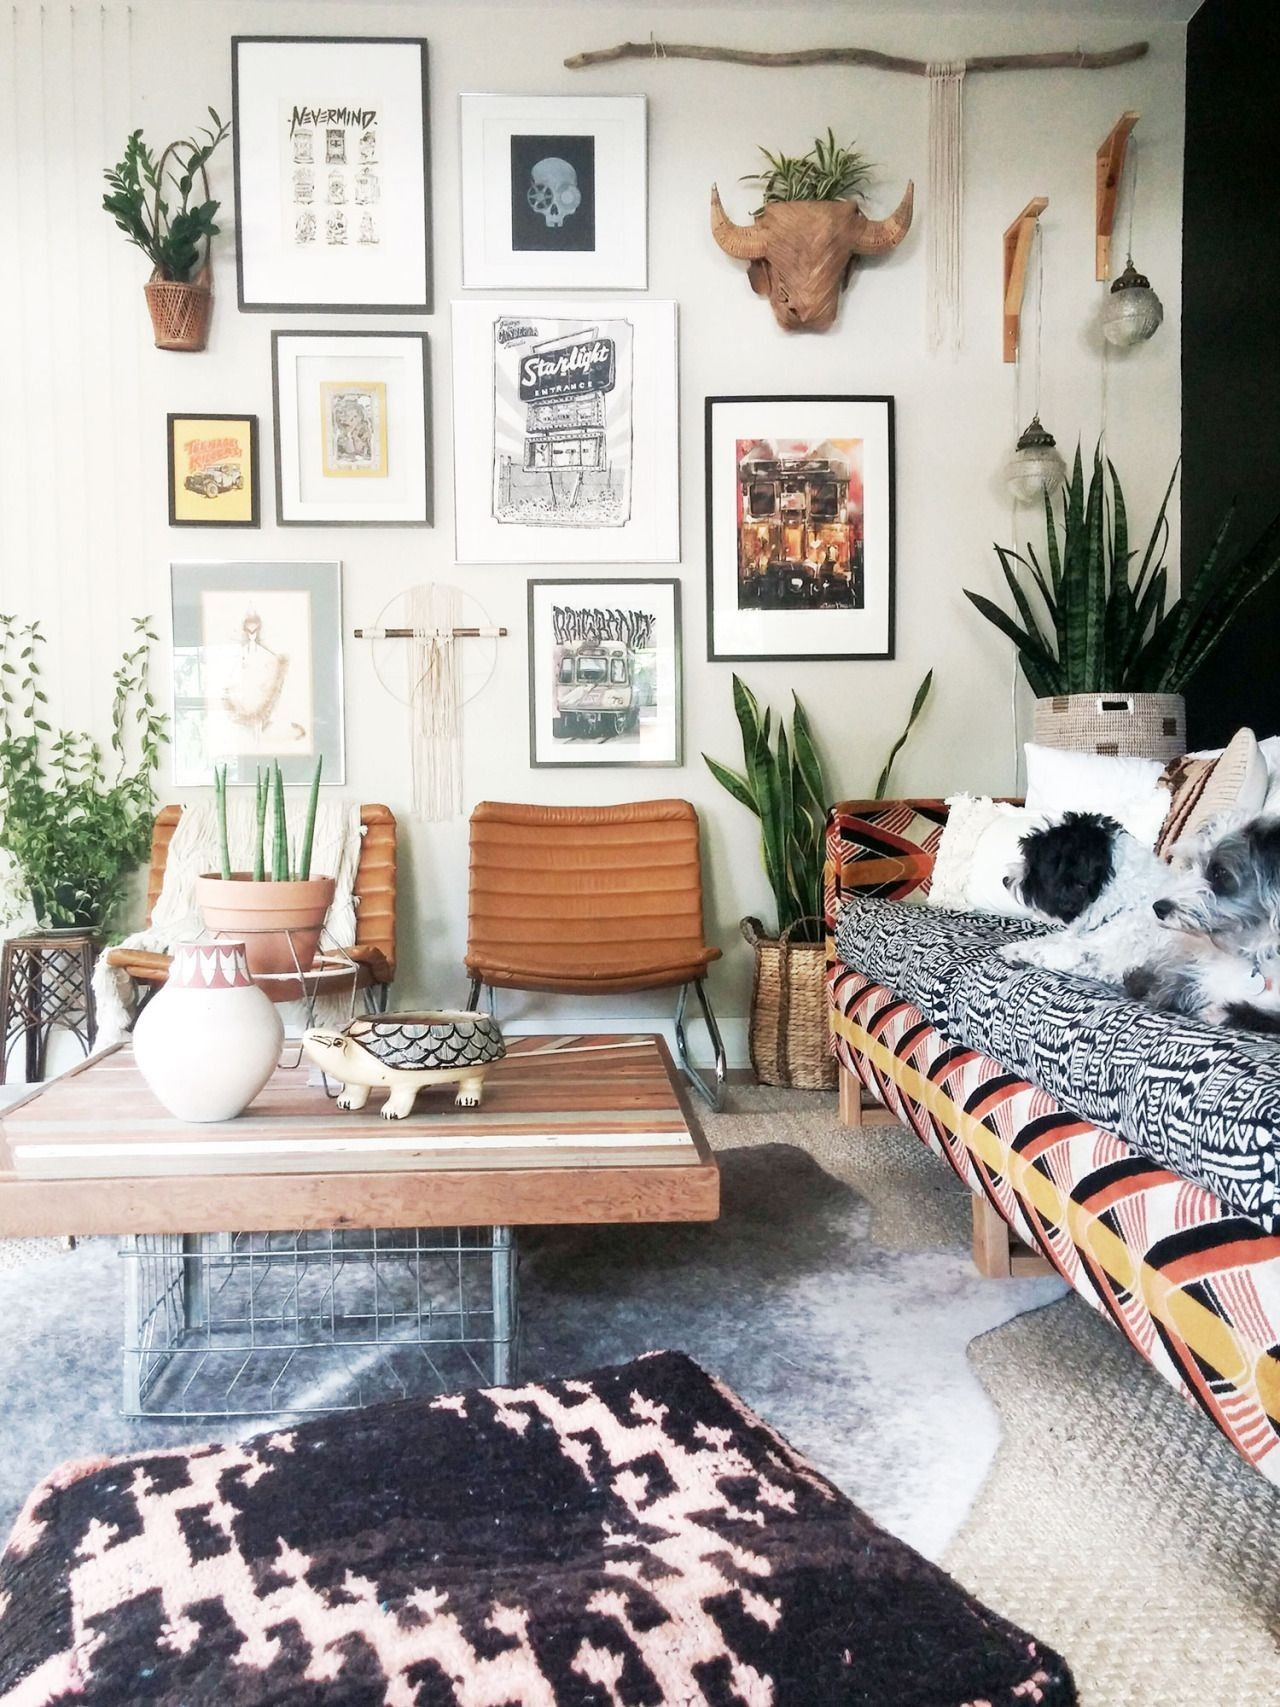 Inspired By The Wall Decor Here Looks Amazing Bohemian Bedroom